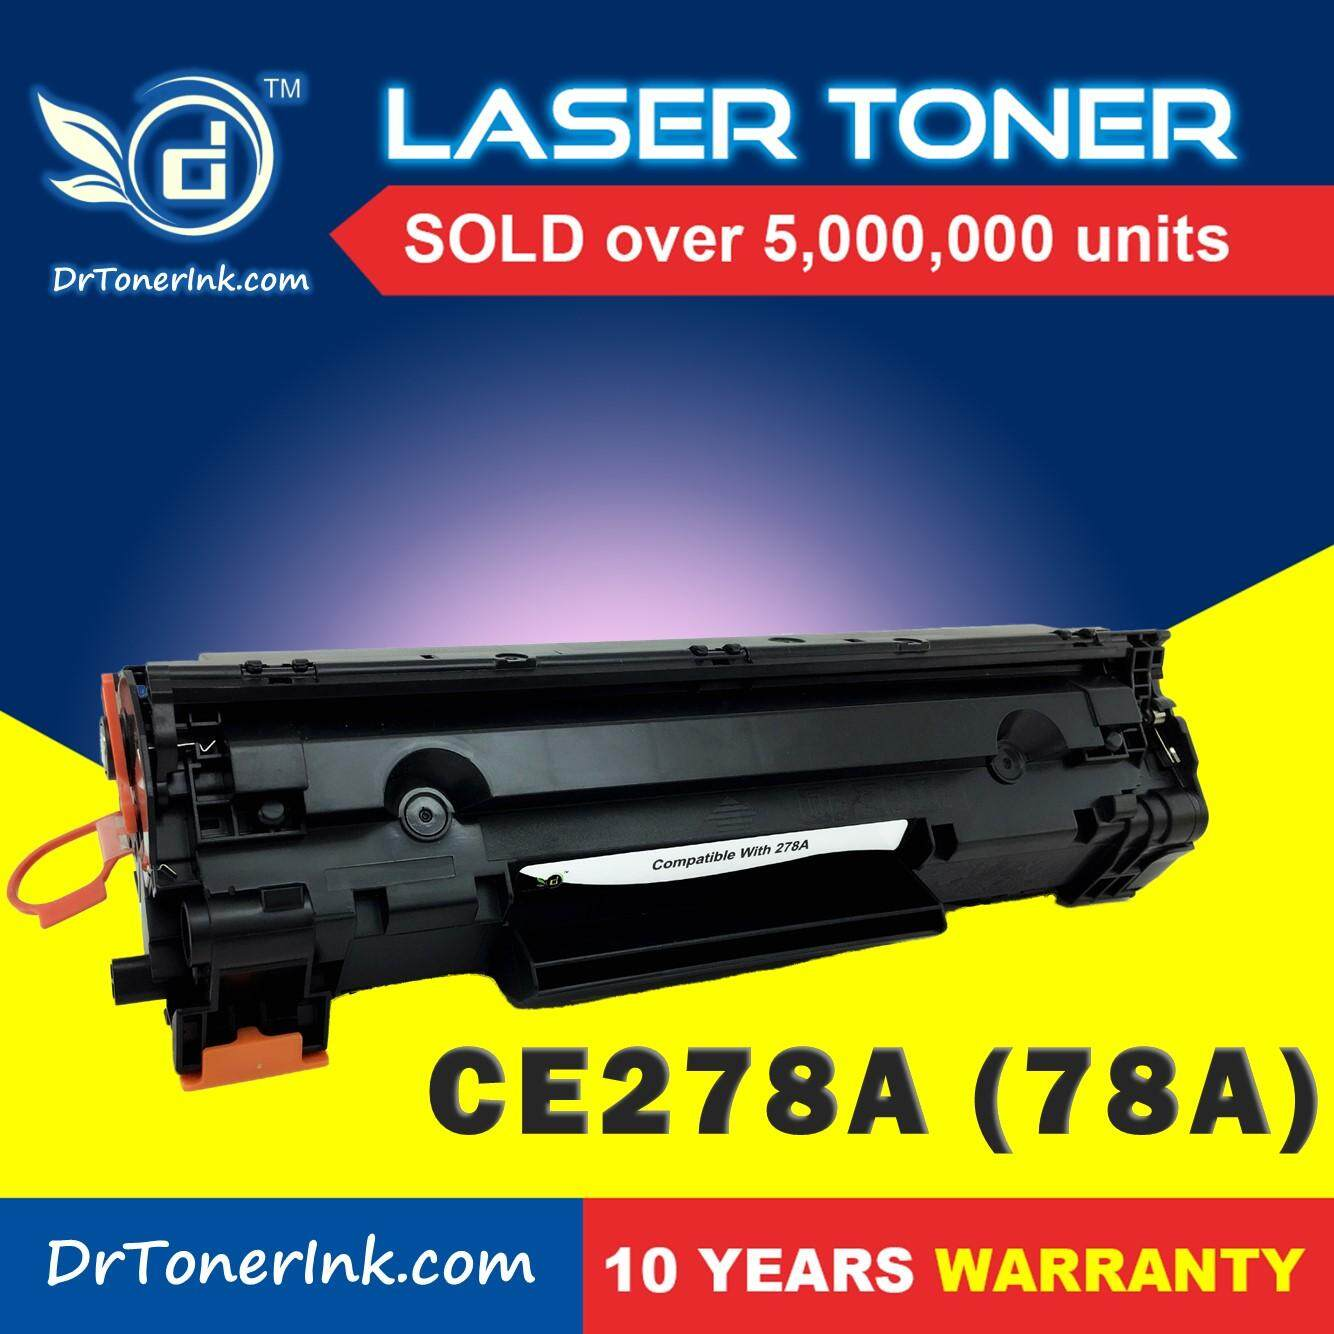 Compatible DrToner HP - CE278A / 278 / 78A (Mono/Black) - LaserJet Pro  P1566 / P1606dn / M1536dnf - Low Cost and Affordable